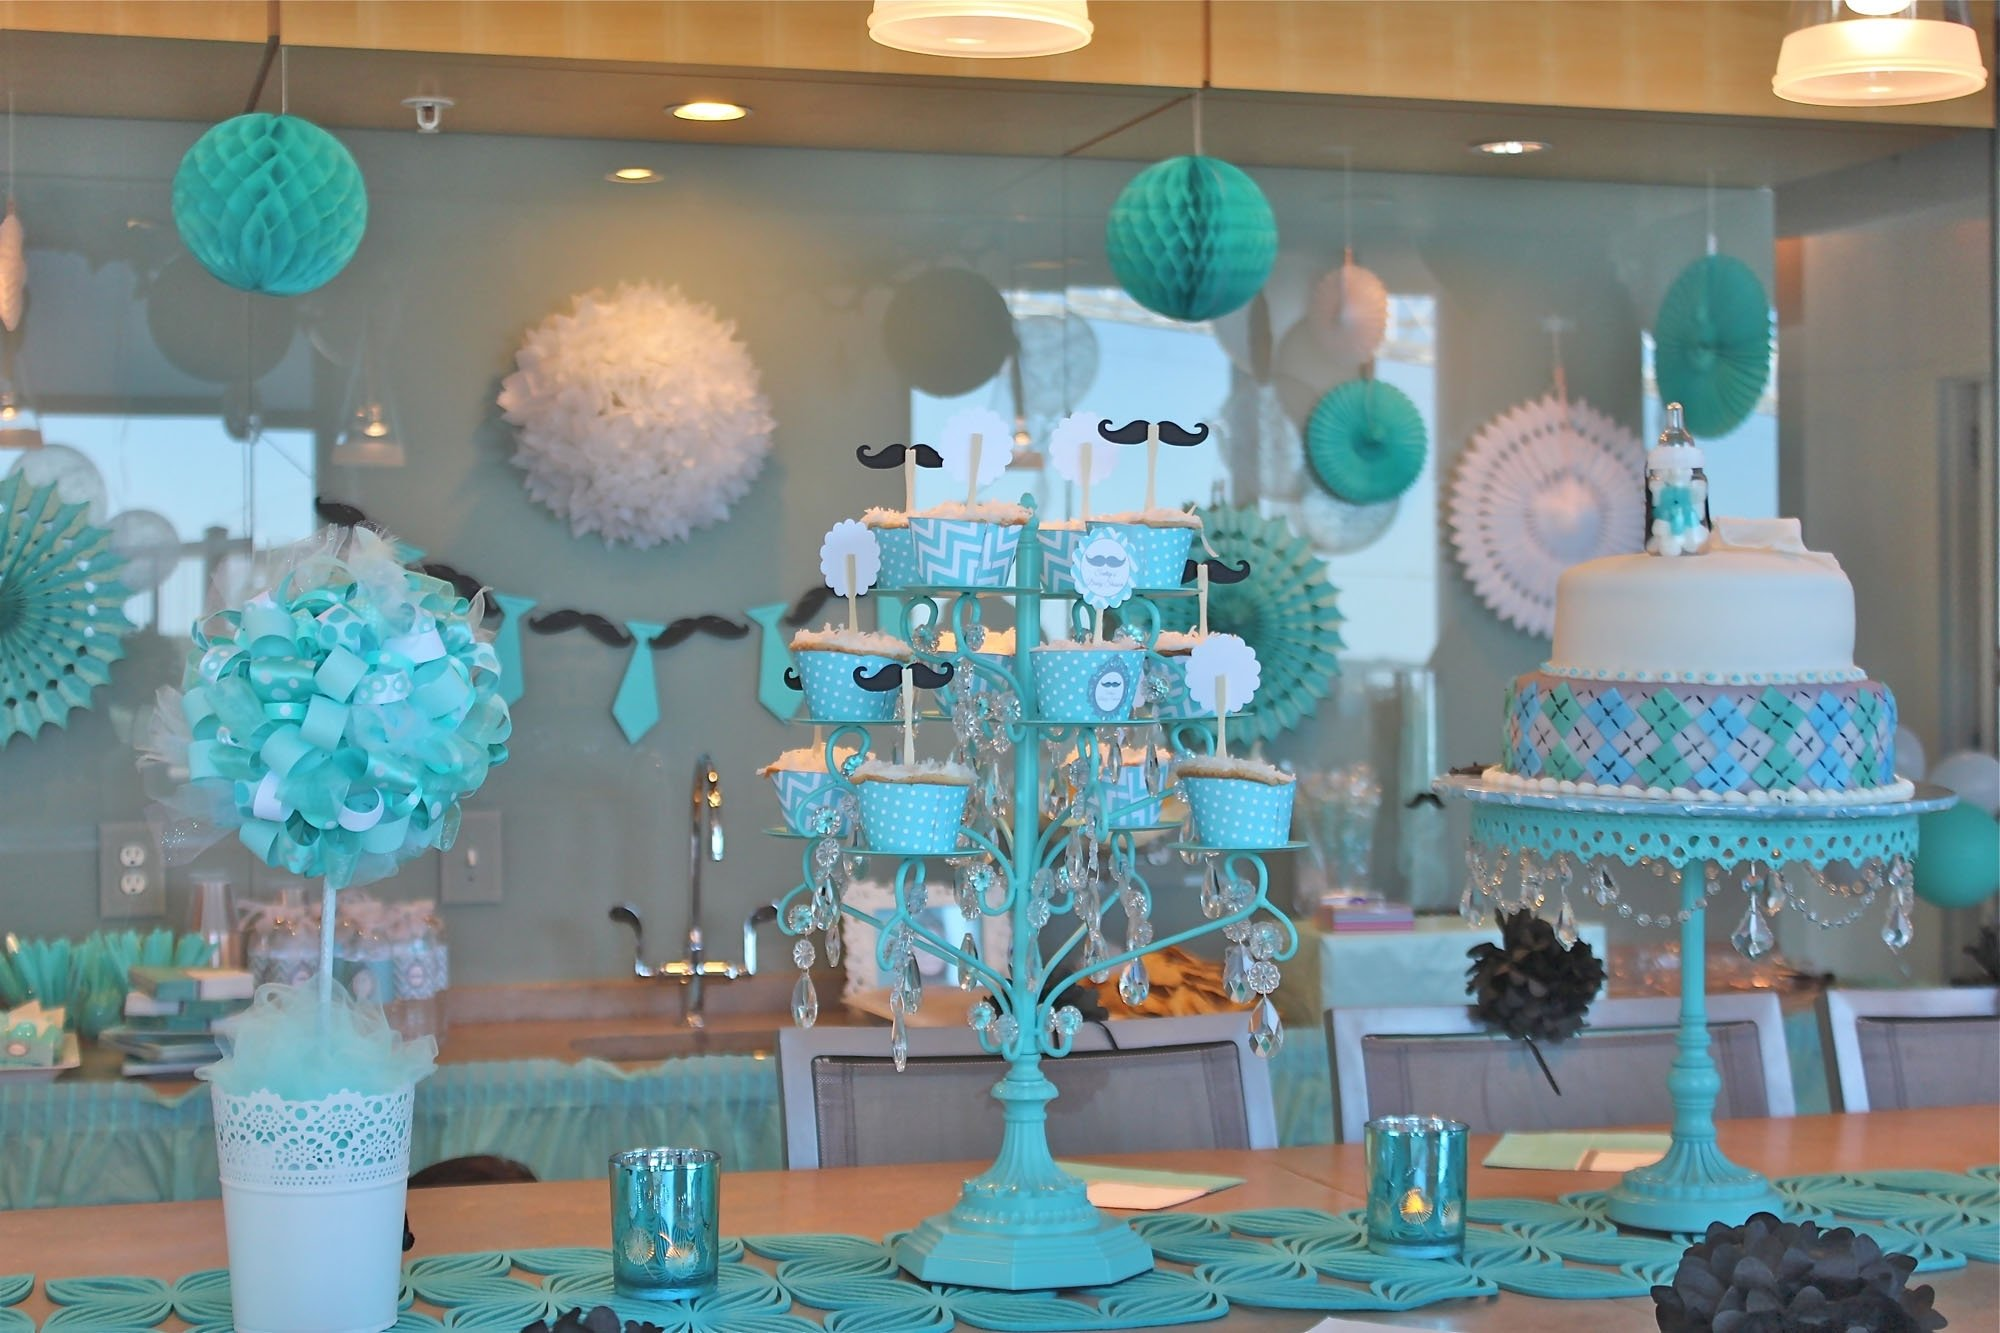 10 Stylish Centerpiece Ideas For Baby Shower centerpiece ideas for baby shower omega center ideas for baby 2020